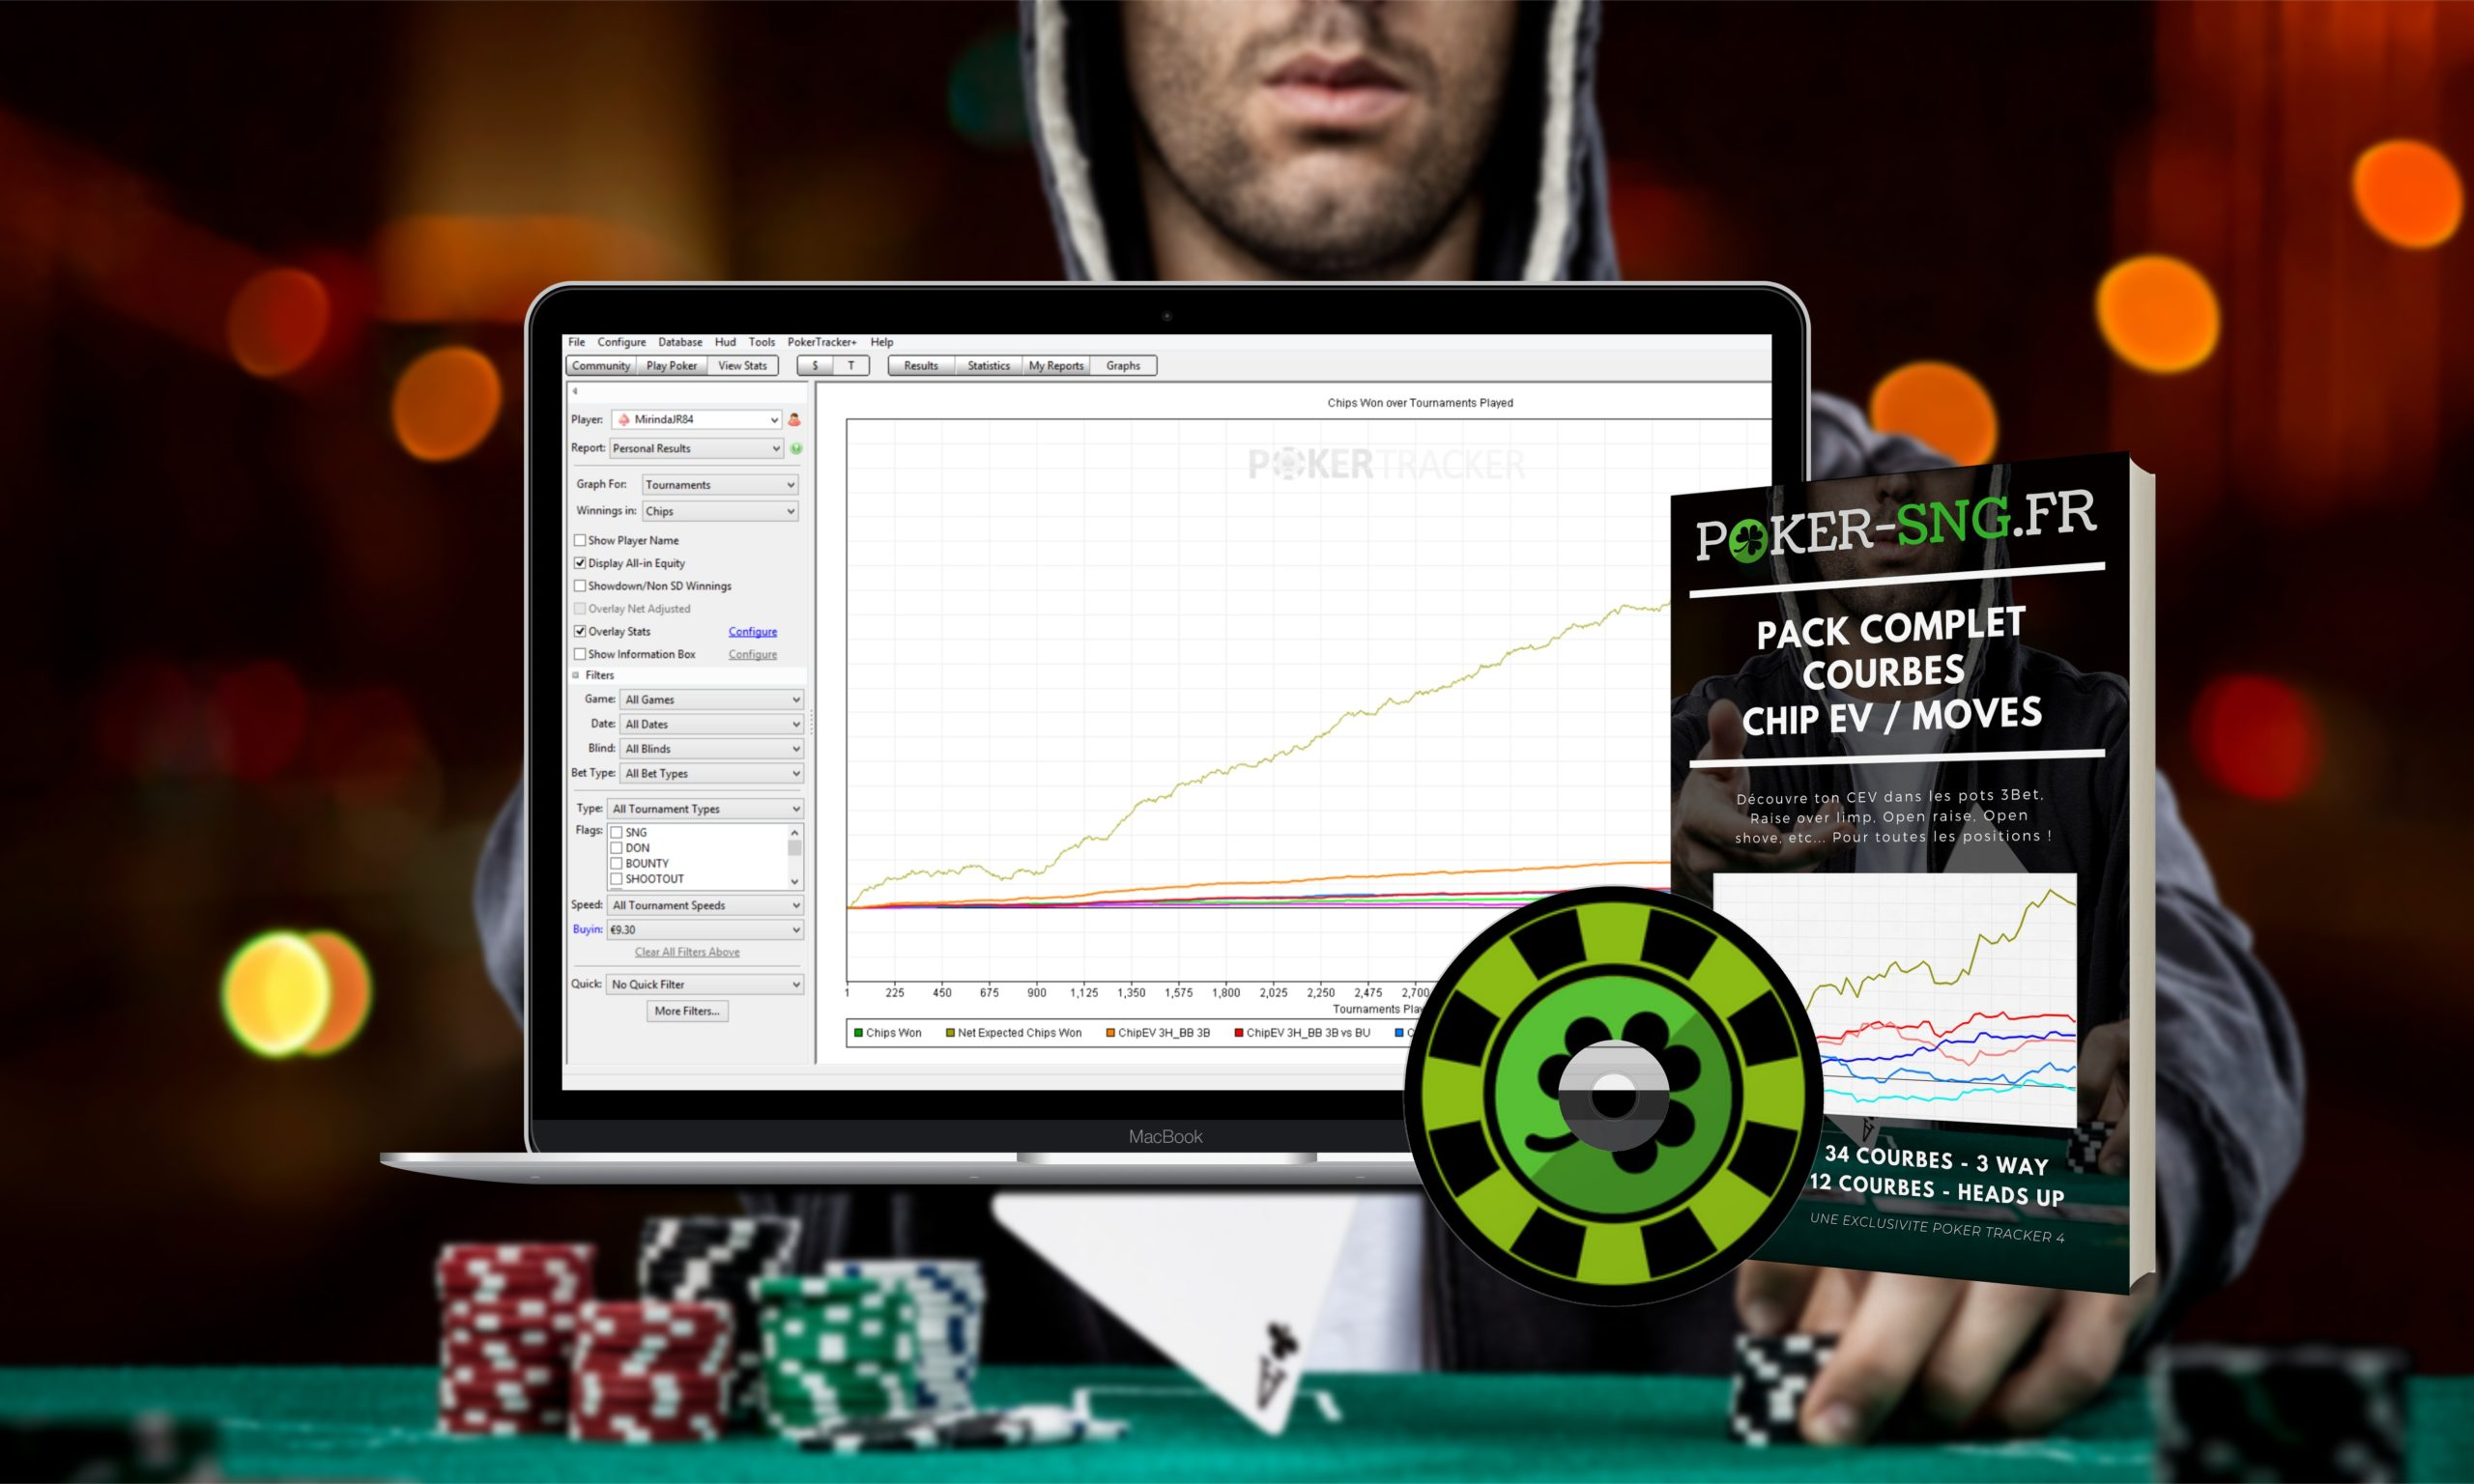 Logiciel Poker Tracker 4 - Pack complet - chip ev - moves